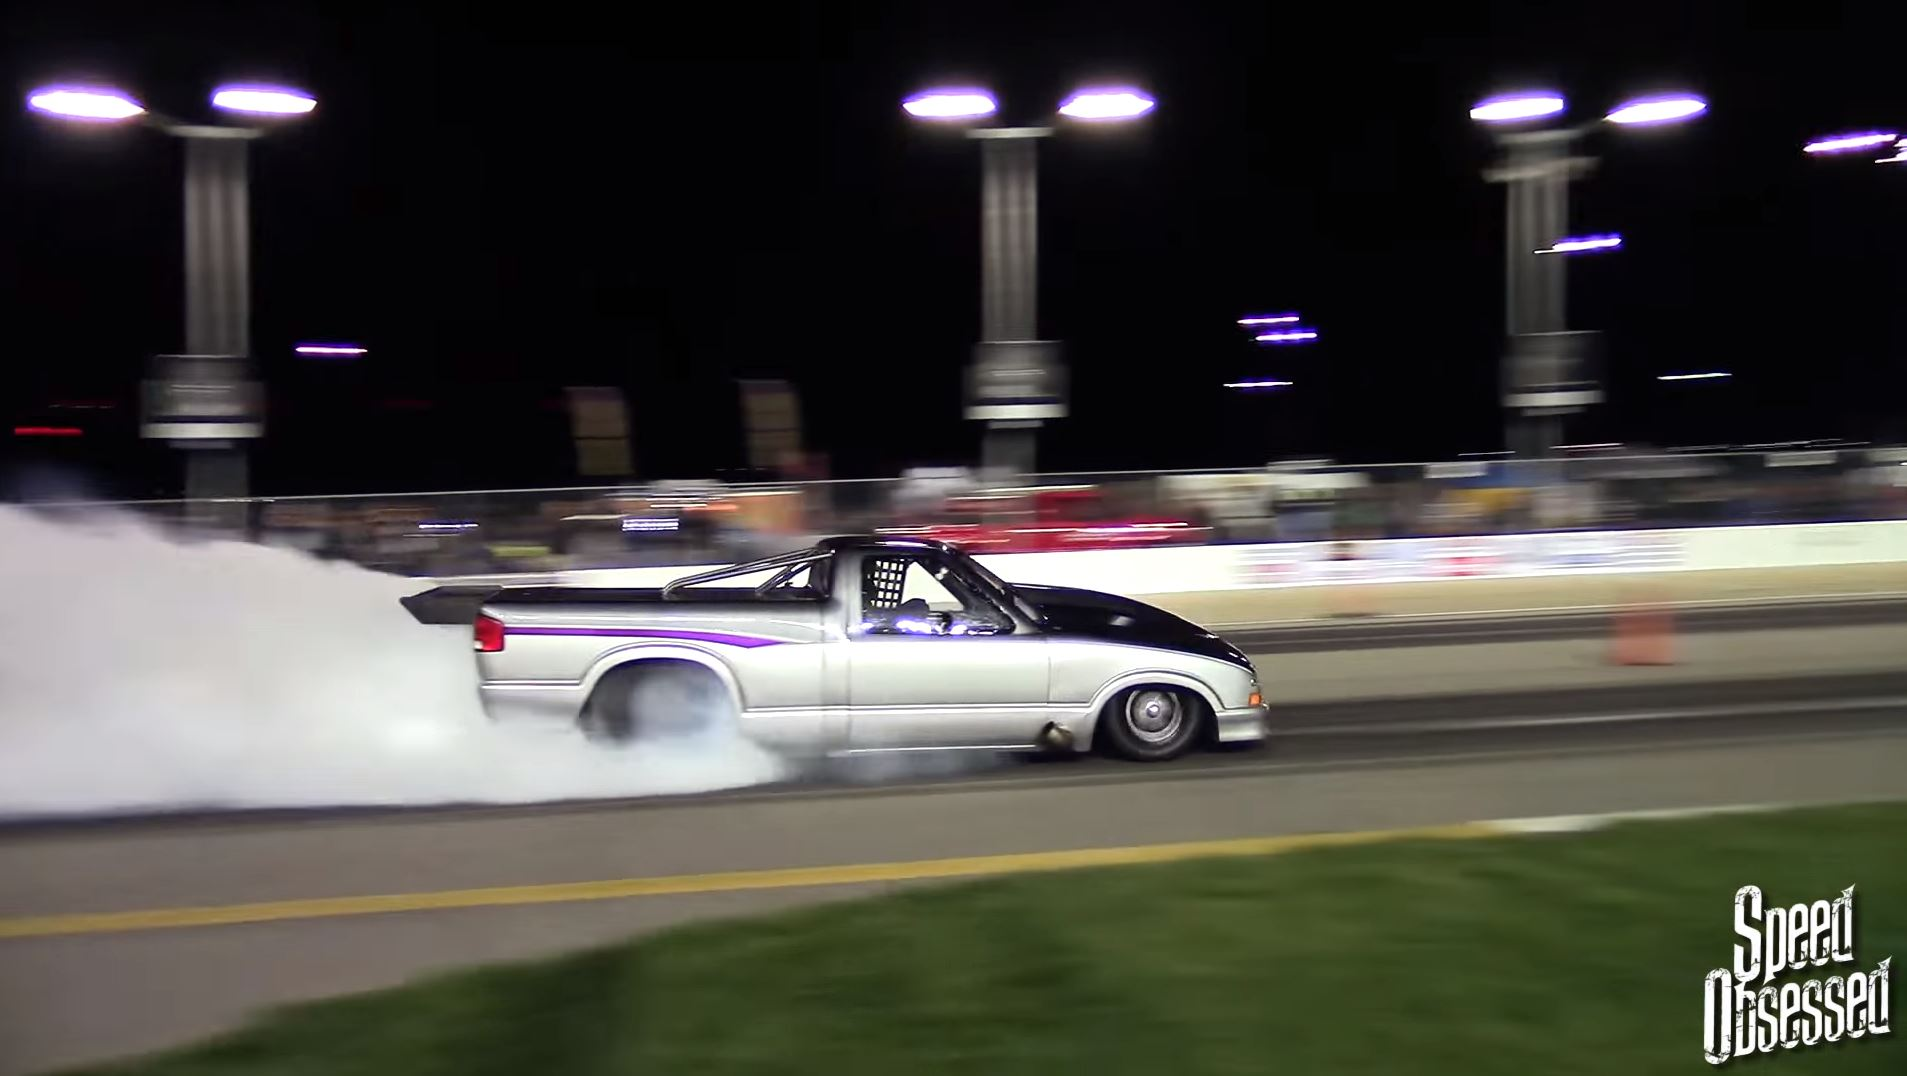 Operation Outlaw No-Prep Drag Racing Video From Pit Lane At Kansas Speedway